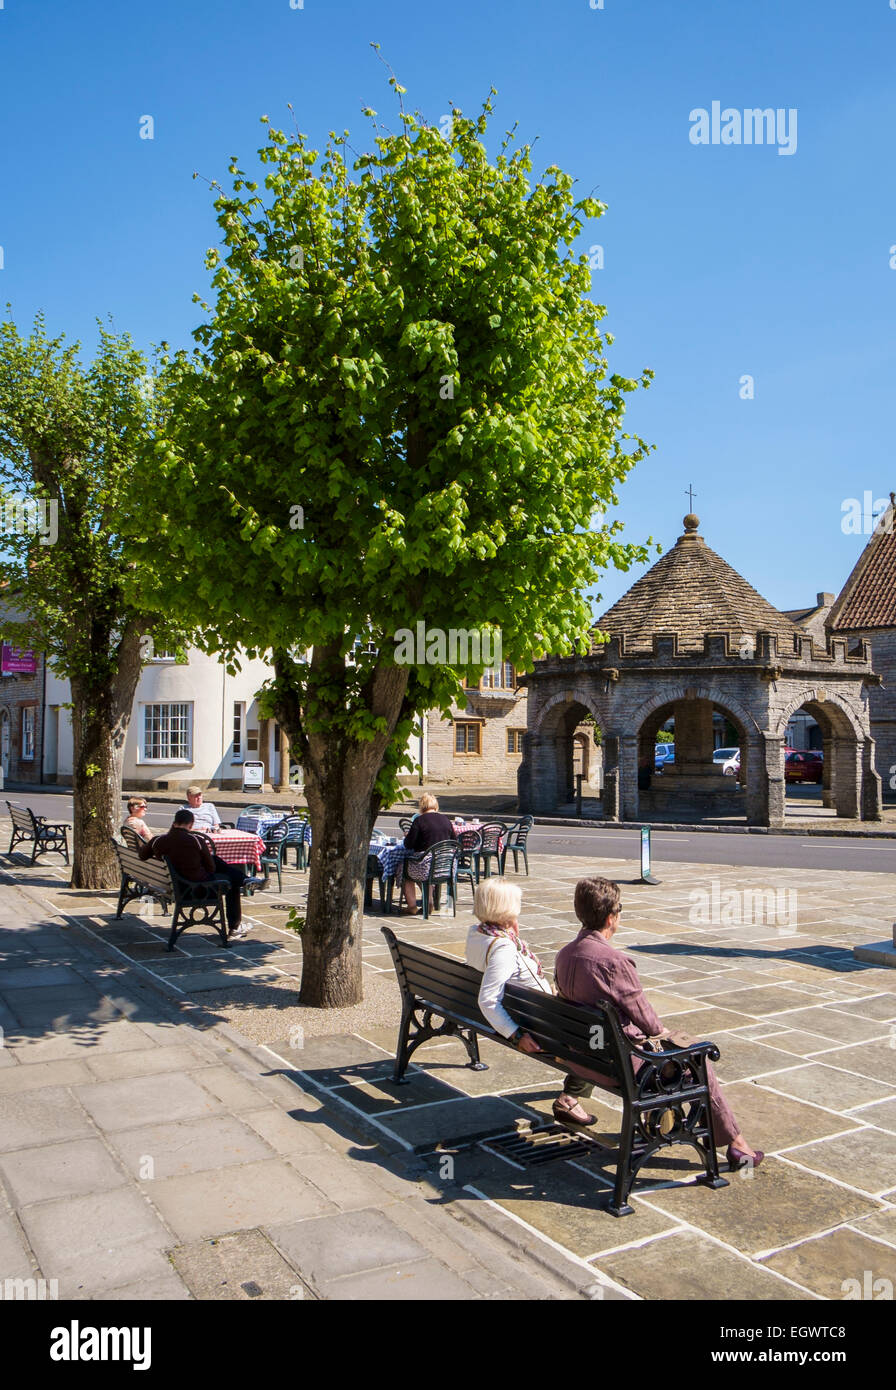 Somerton, a beautiful old small market town in Somerset, England, UK with market cross and people sitting on a bench - Stock Image